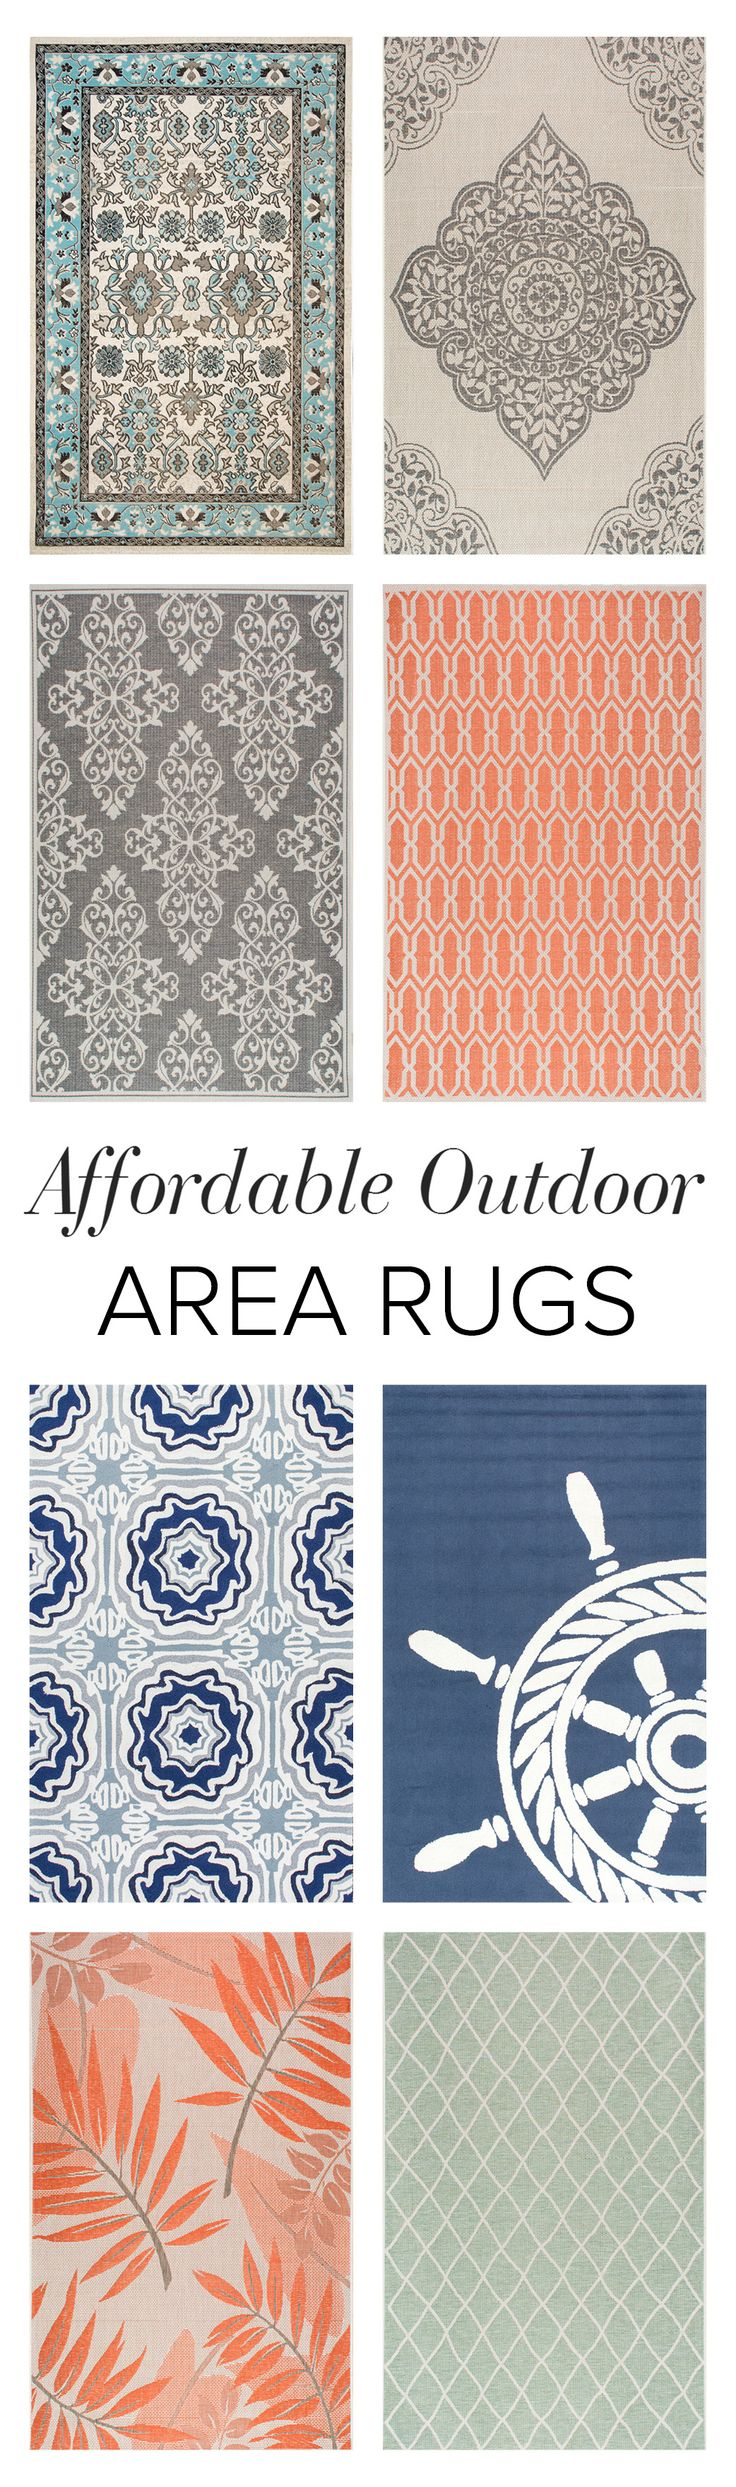 Decorate Your Patio Or Backyard With An Outdoor Rug! Shop On Rugs USA To  Find